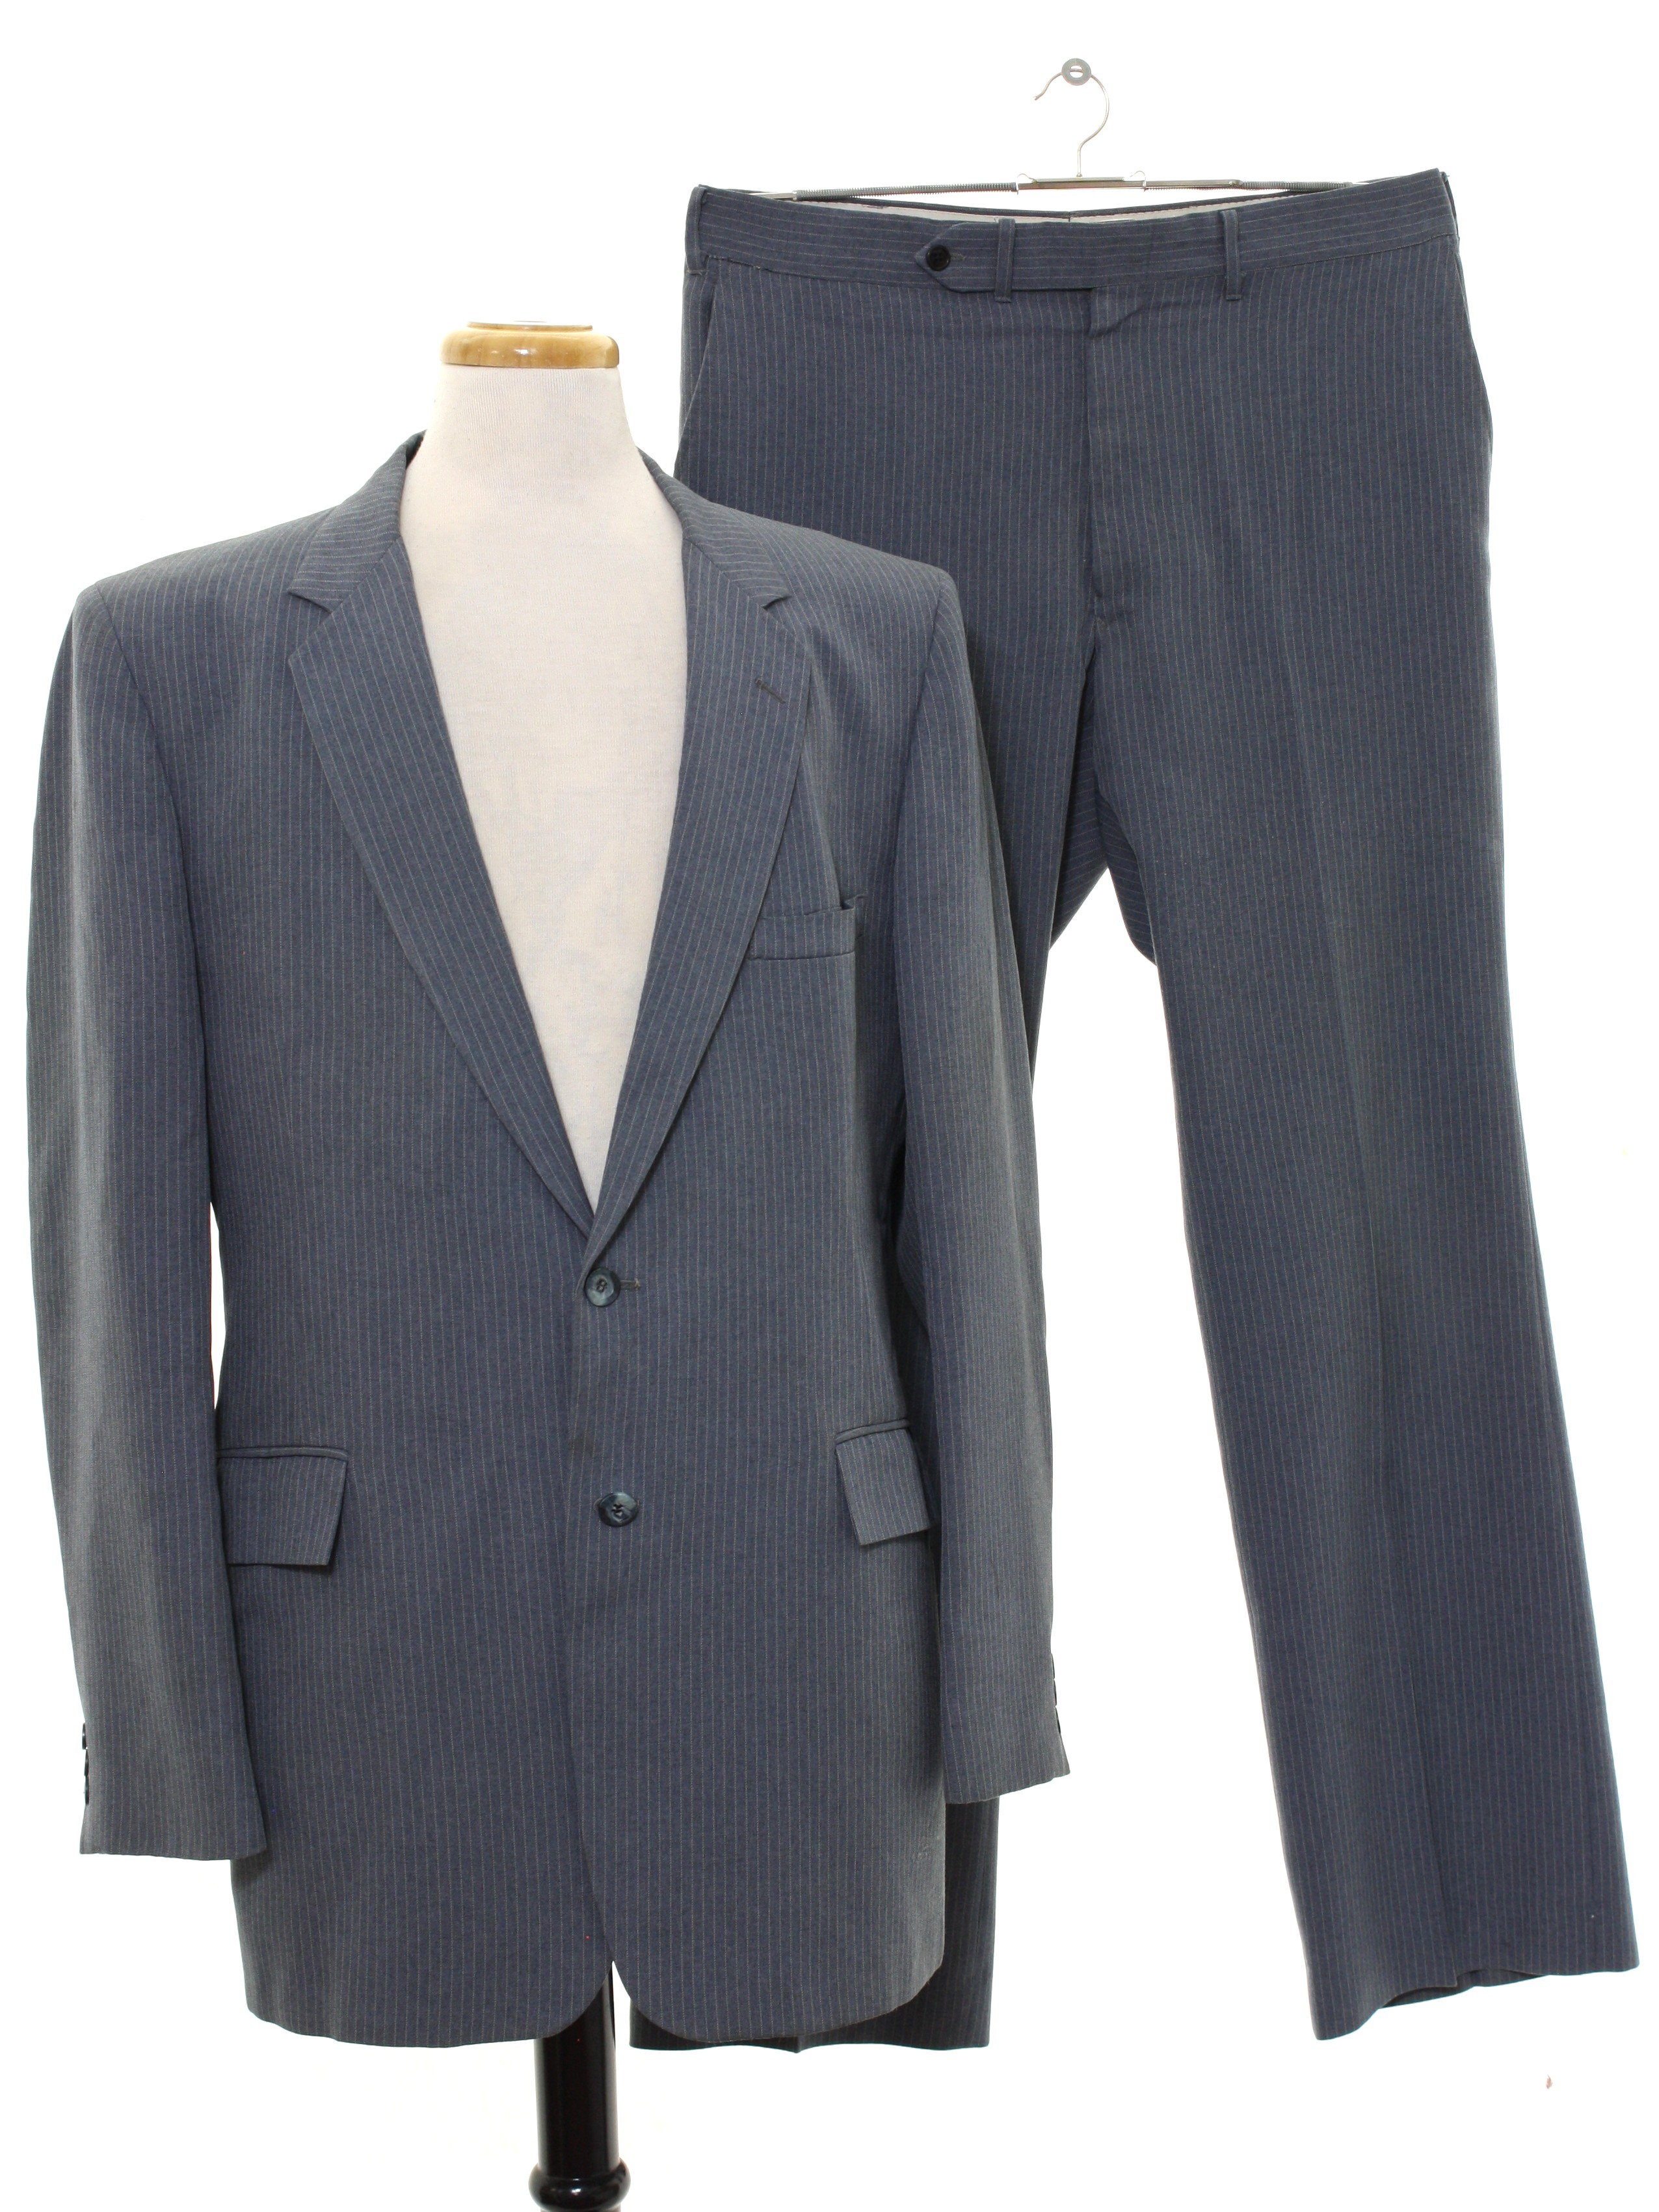 Vintage 70s Disco Suit 70s Fit Well Mens Two Piece